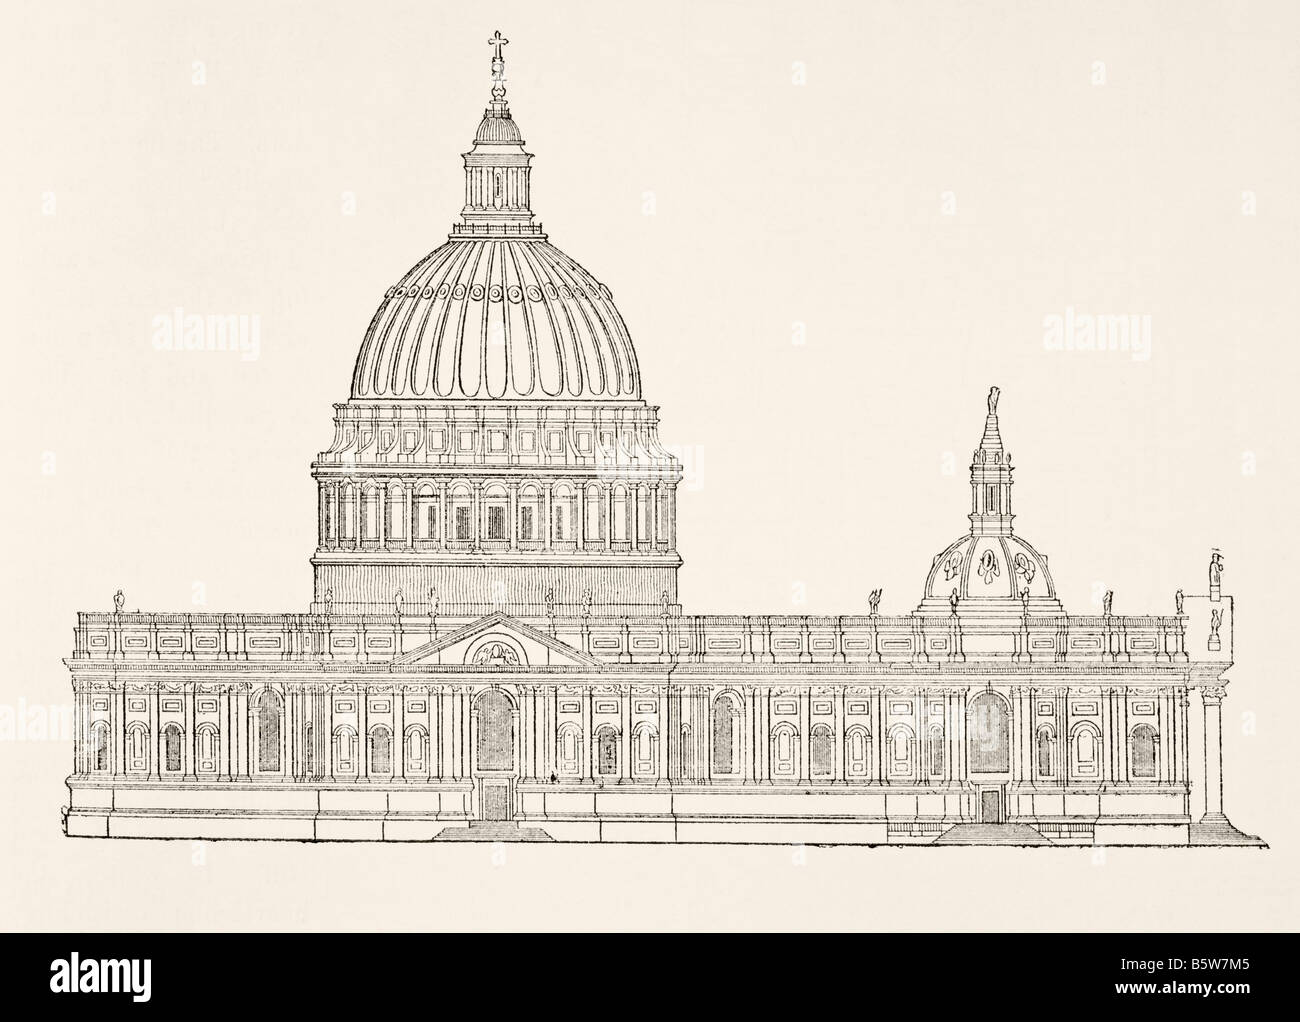 Christopher Wren's first design for the new St Paul0s Cathedral after the Great Fire of London, Stock Photo